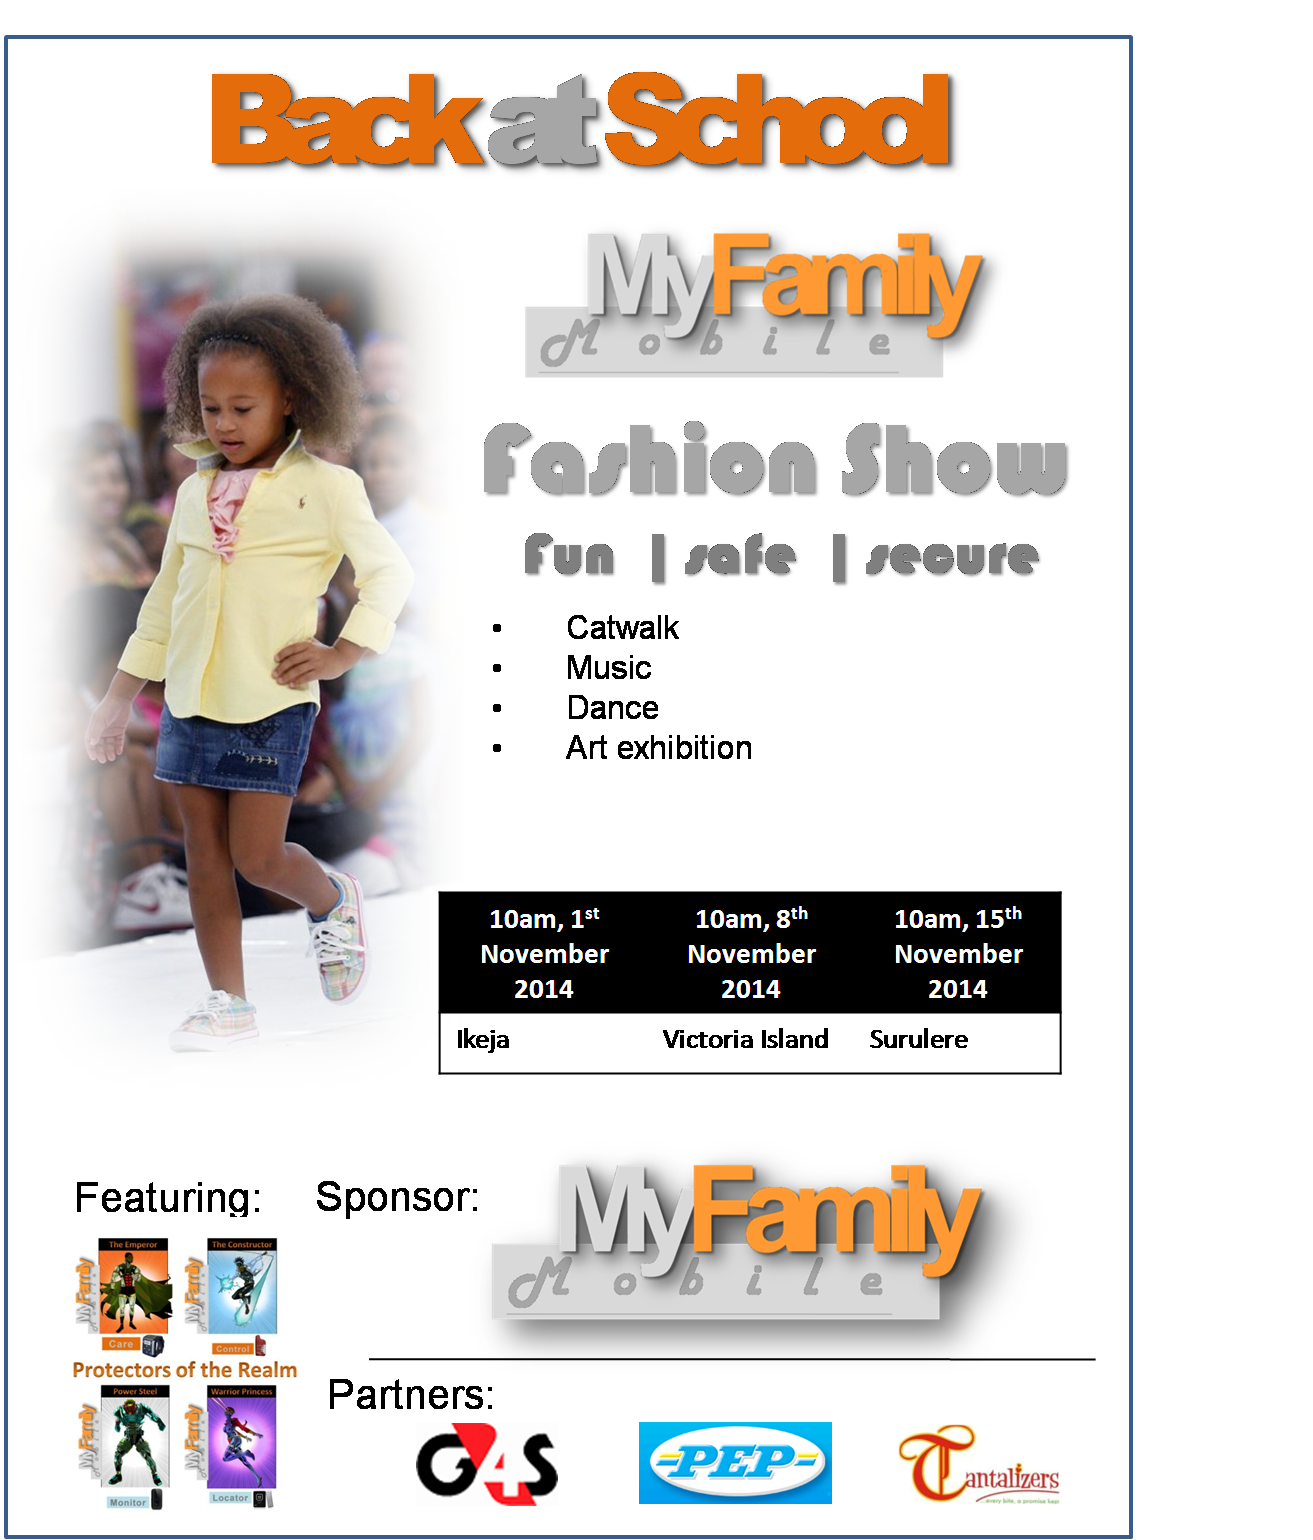 BACK AT SCHOOL FASHION SHOW - 1ST NOVEMBER 2014